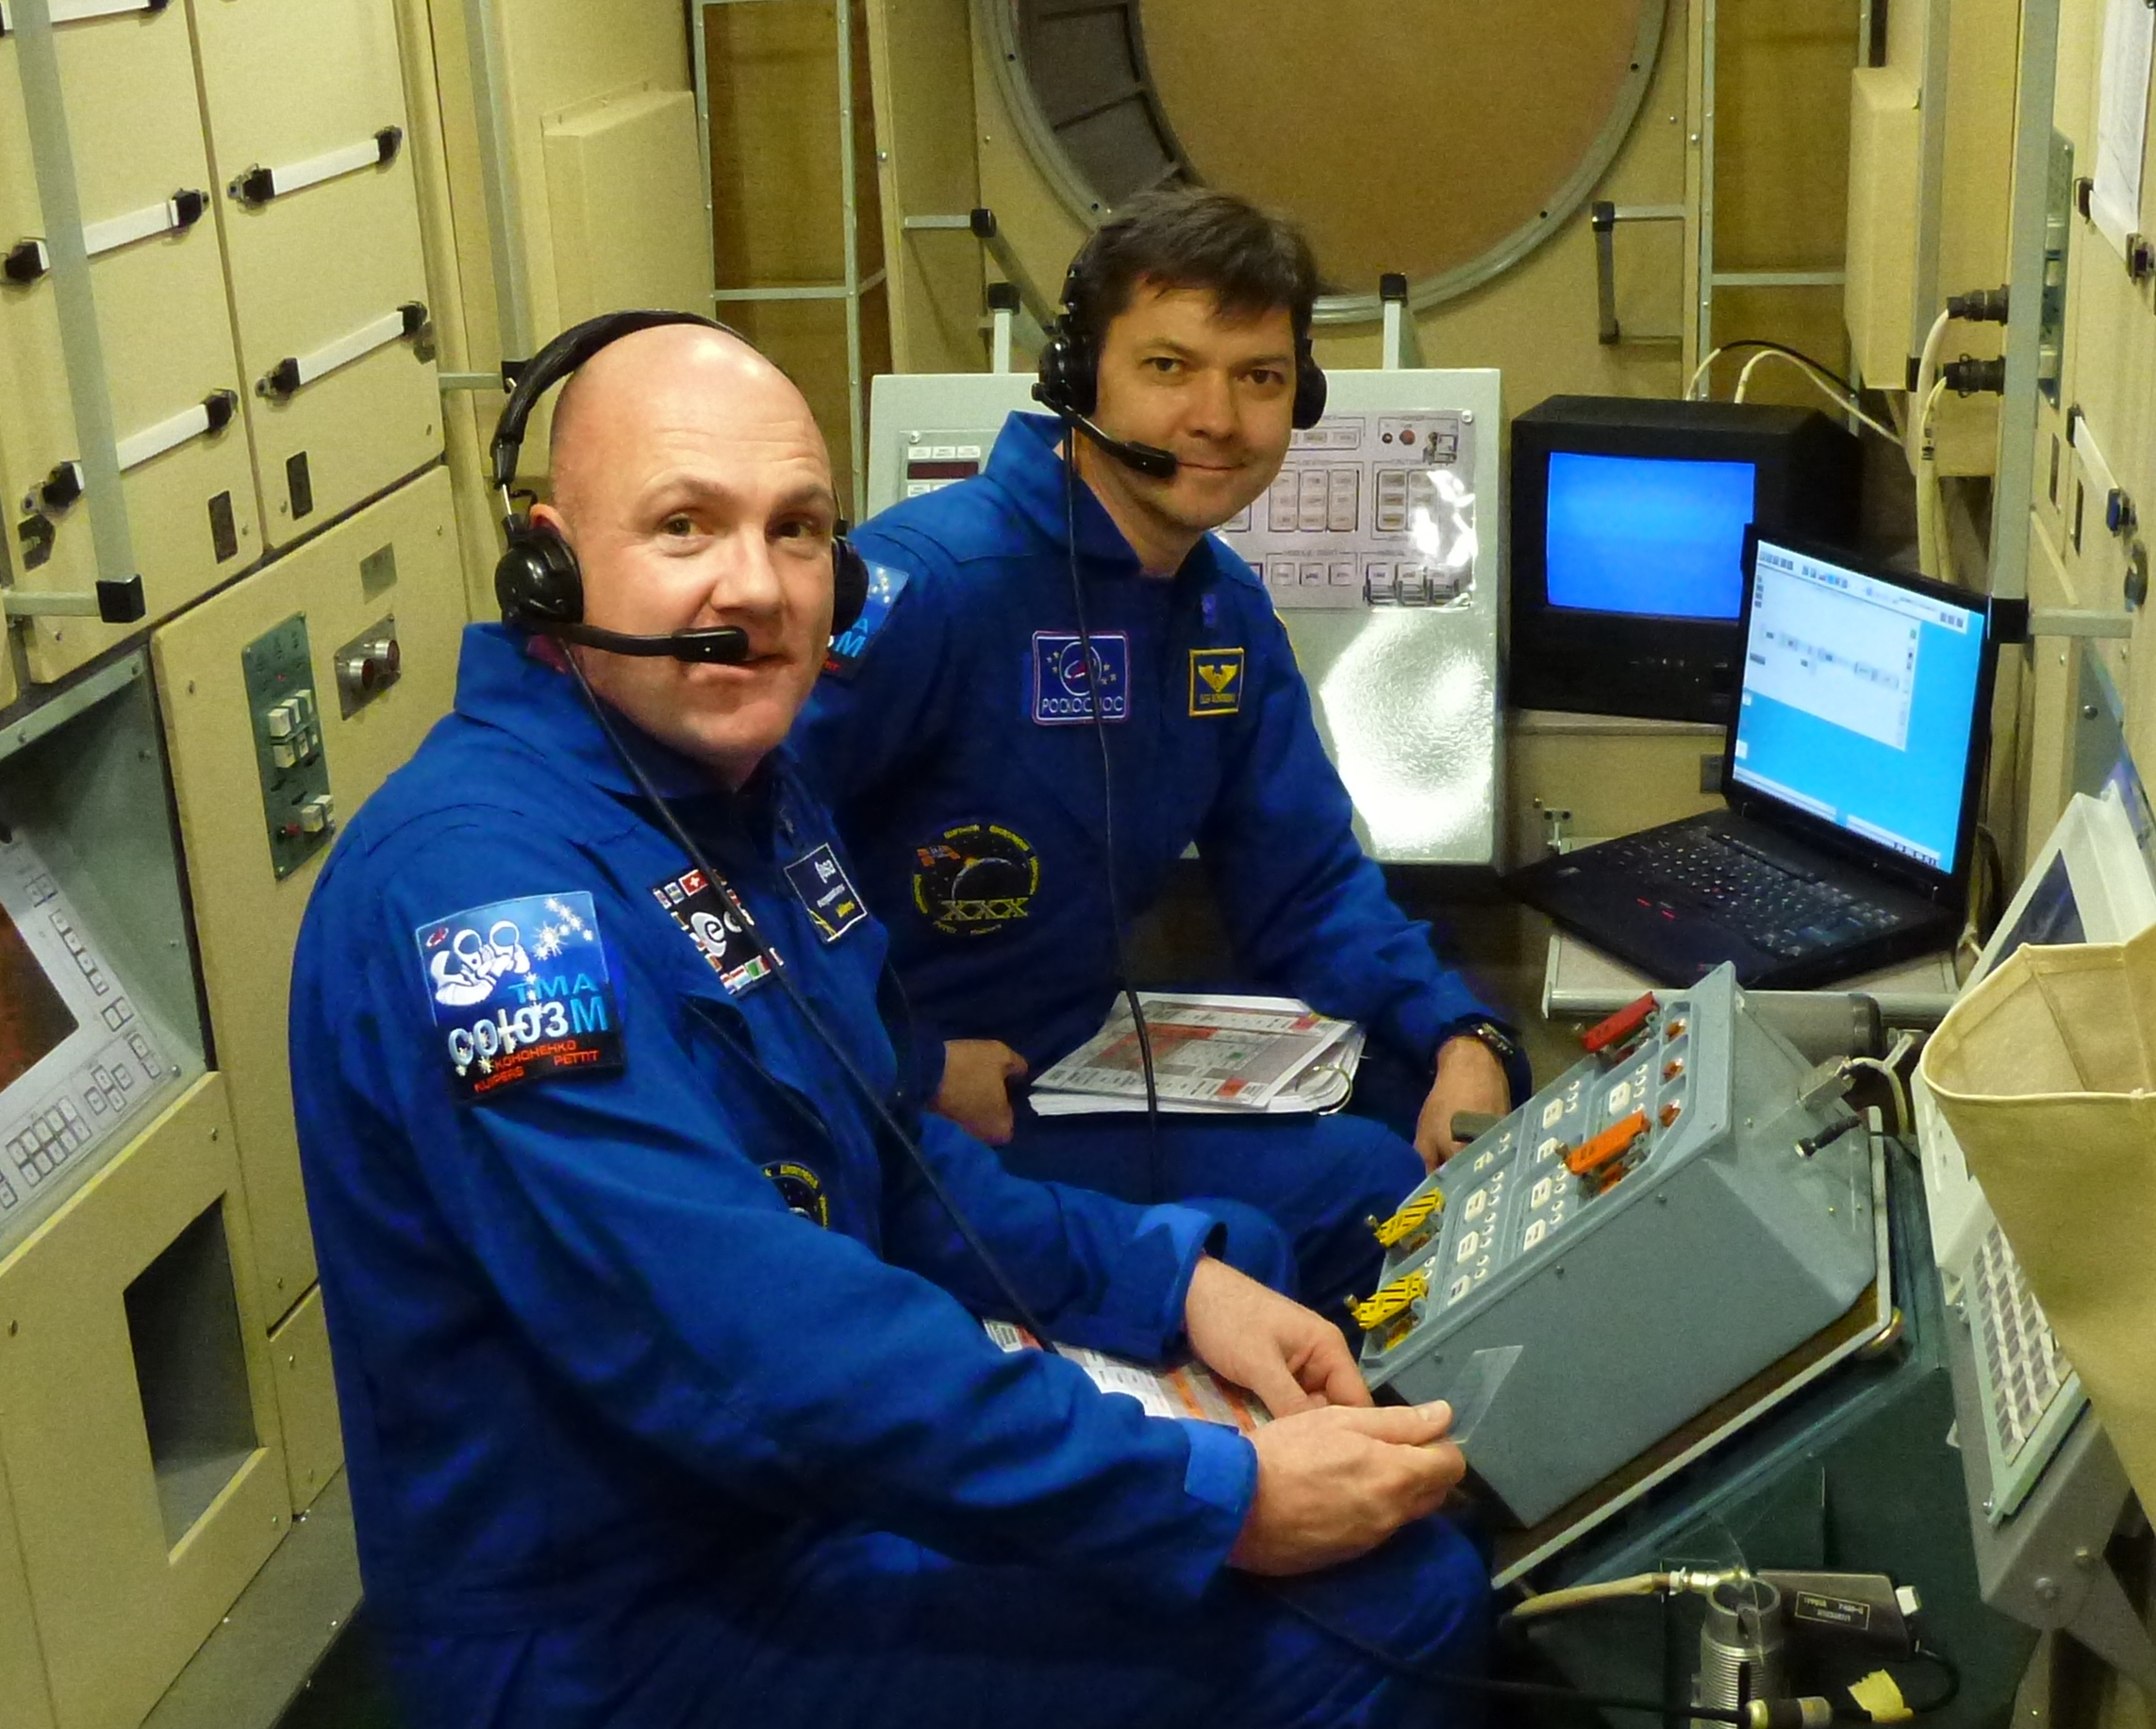 Congratulations from Oleg Gadetsky on March 8 98